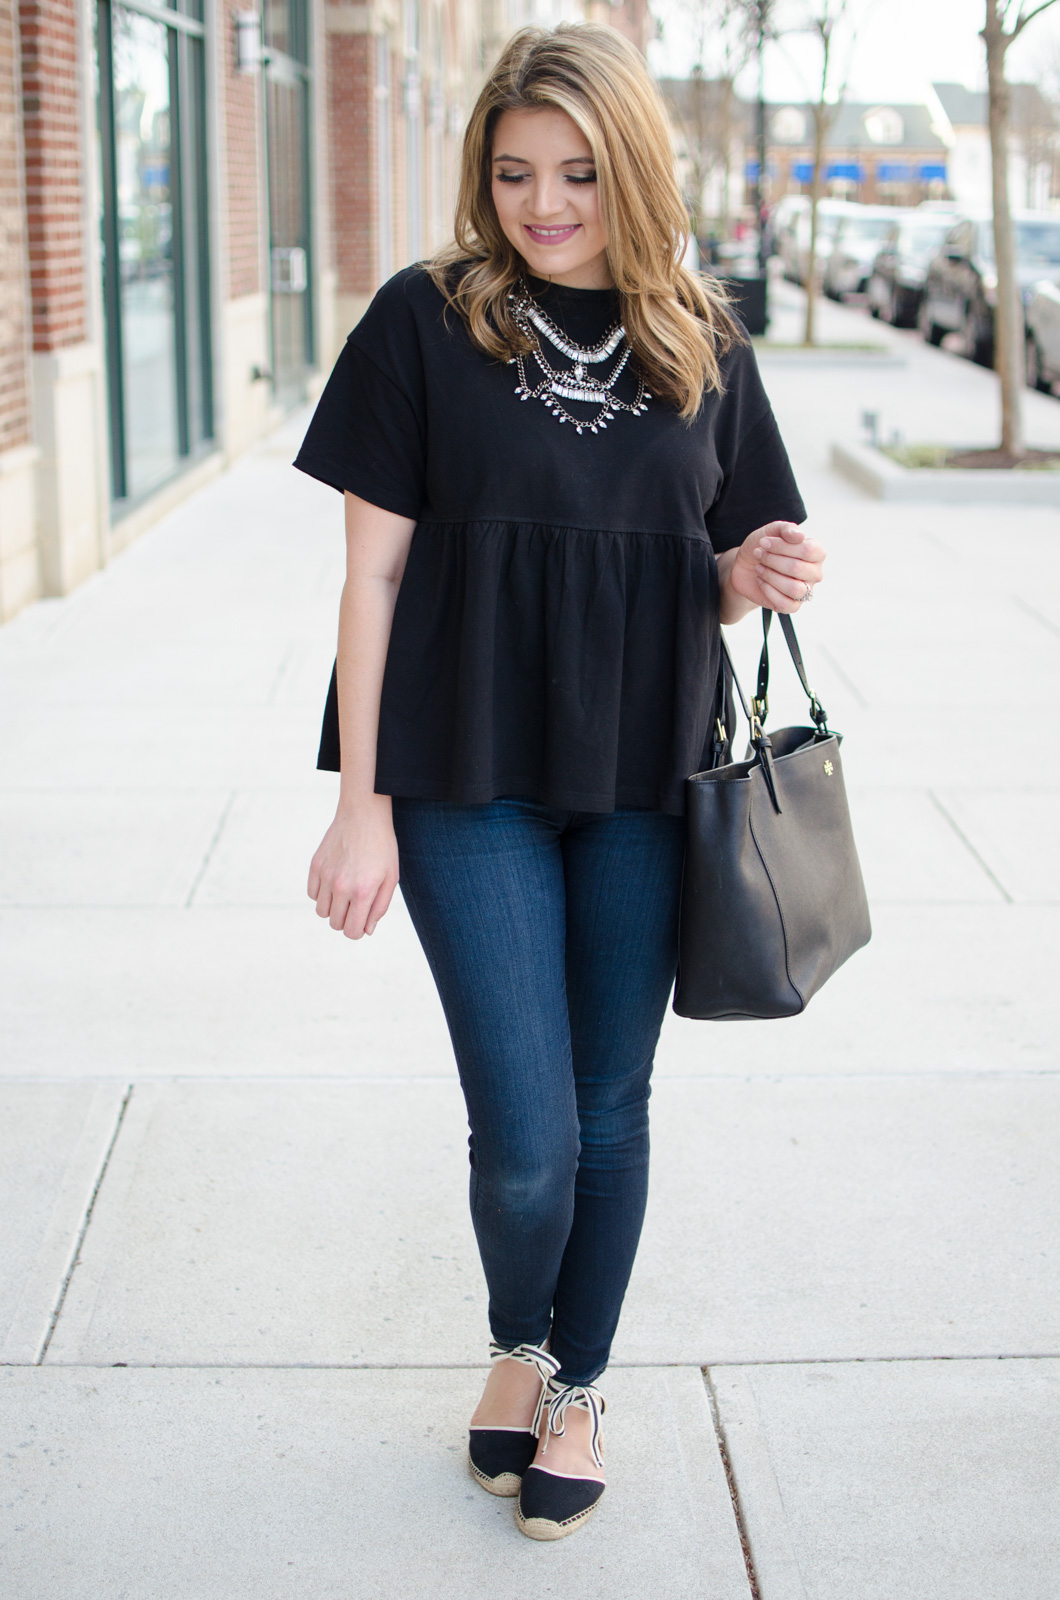 ruffle hem tee outfit - black oversized peplum top with skinny jeans and lace up espadrilles | Click through for more cute weekend outfit ideas or to shop this look! www.bylaurenm.com